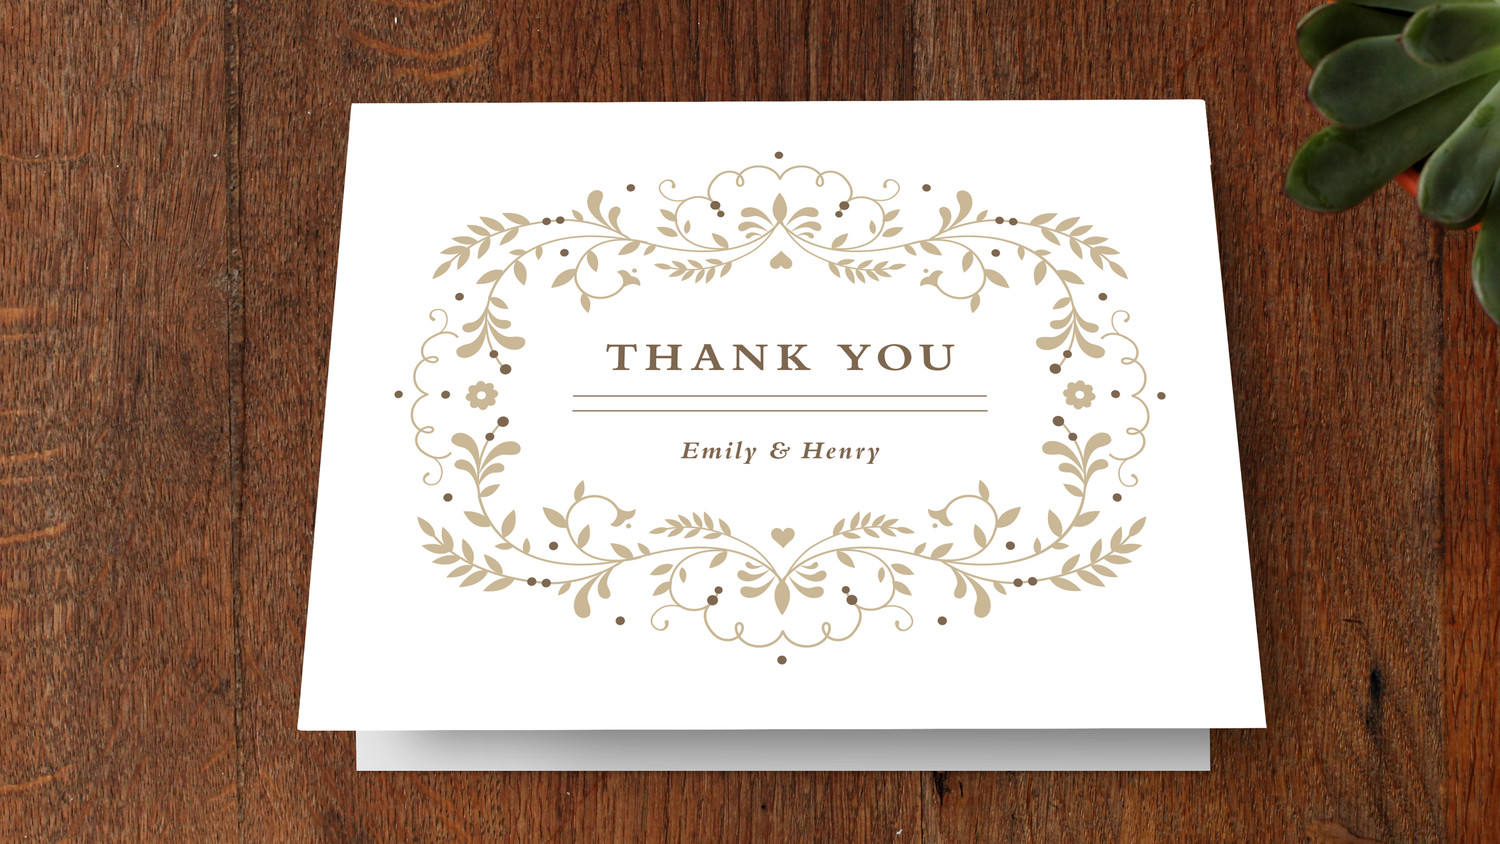 bridal shower thank you cards etiquette%0A when should you send out thank cards after bridal shower when to send out thank  you cards for wedding shower when to send out thank you when to send out